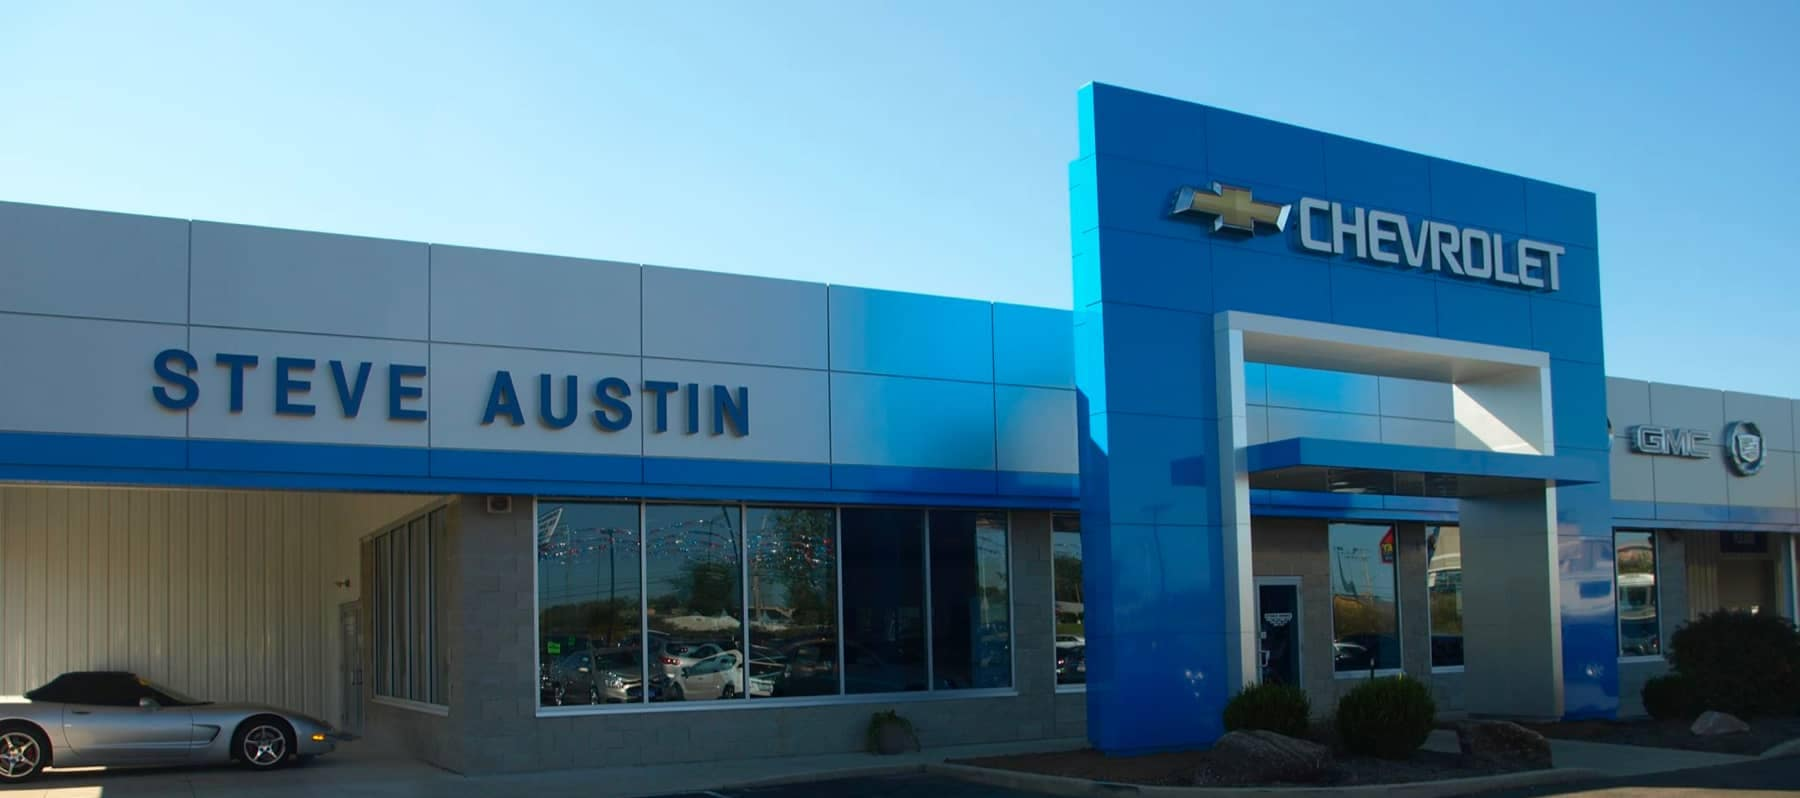 Steve Austin's dealership building